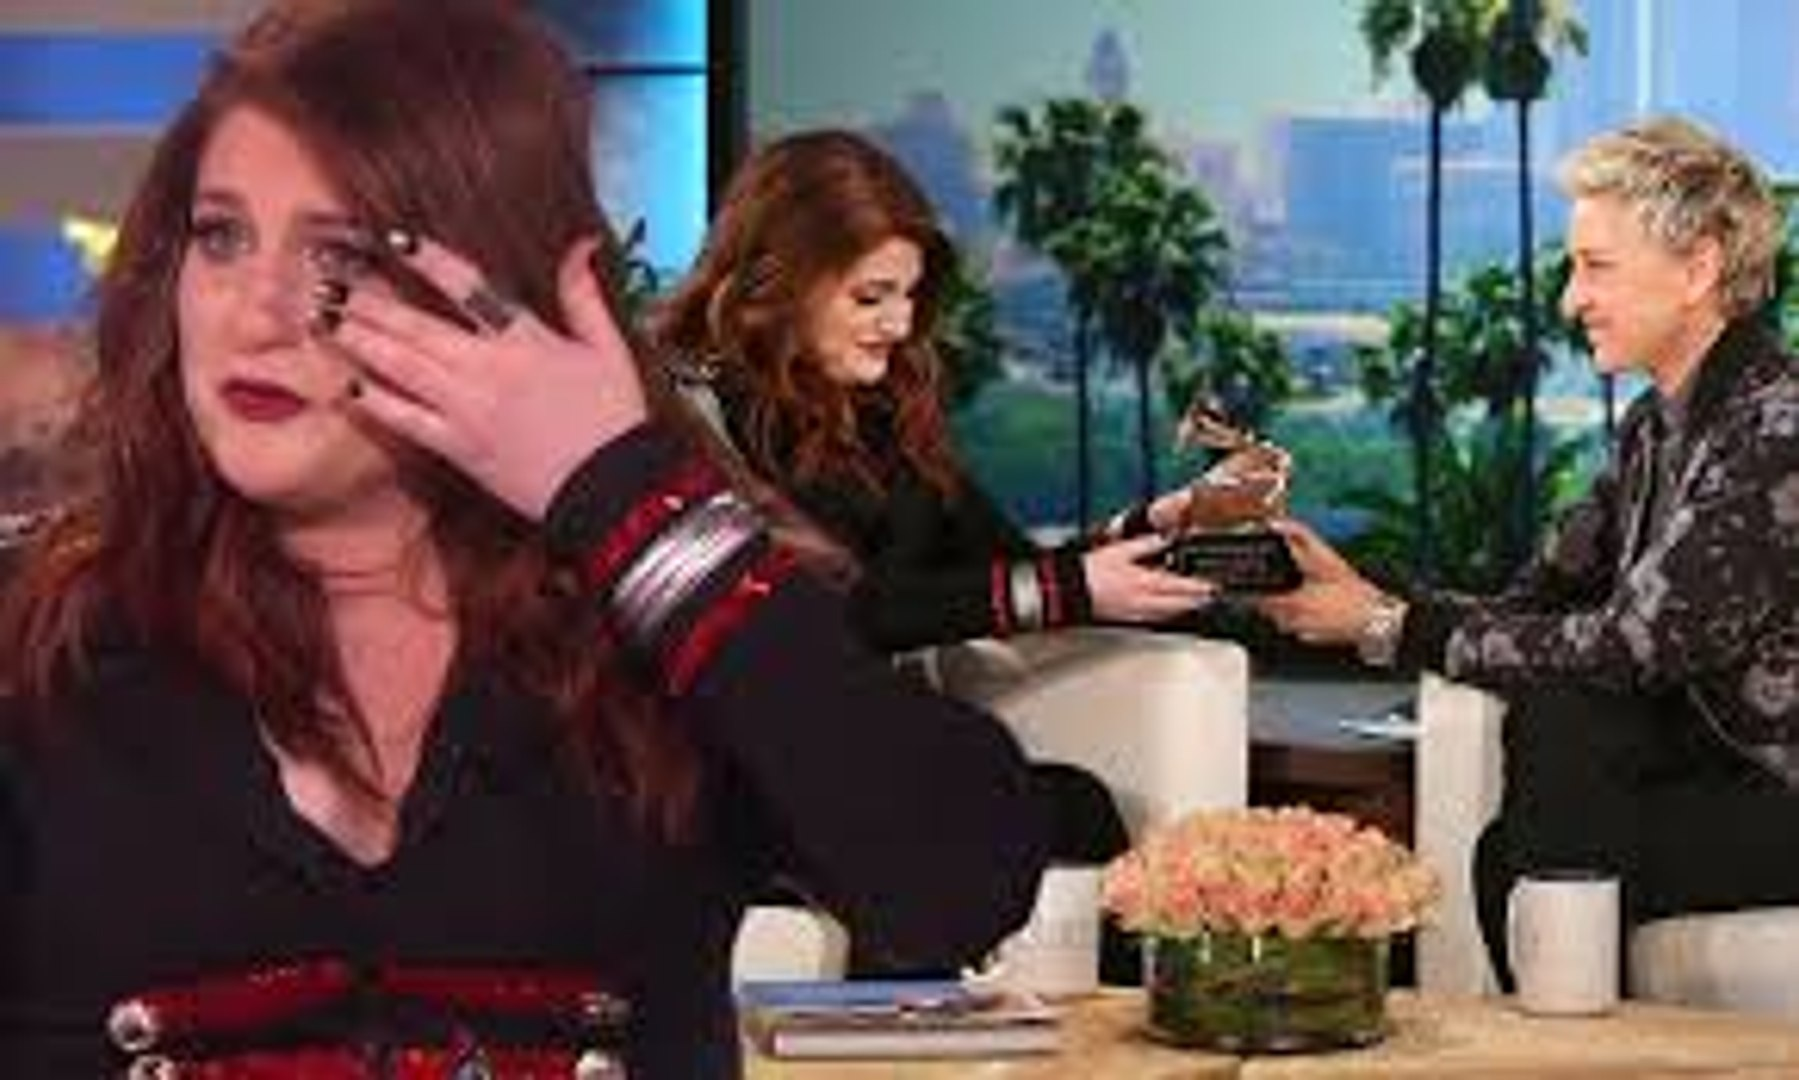 Meghan Trainor bursts into tears over her Grammy awards 2016